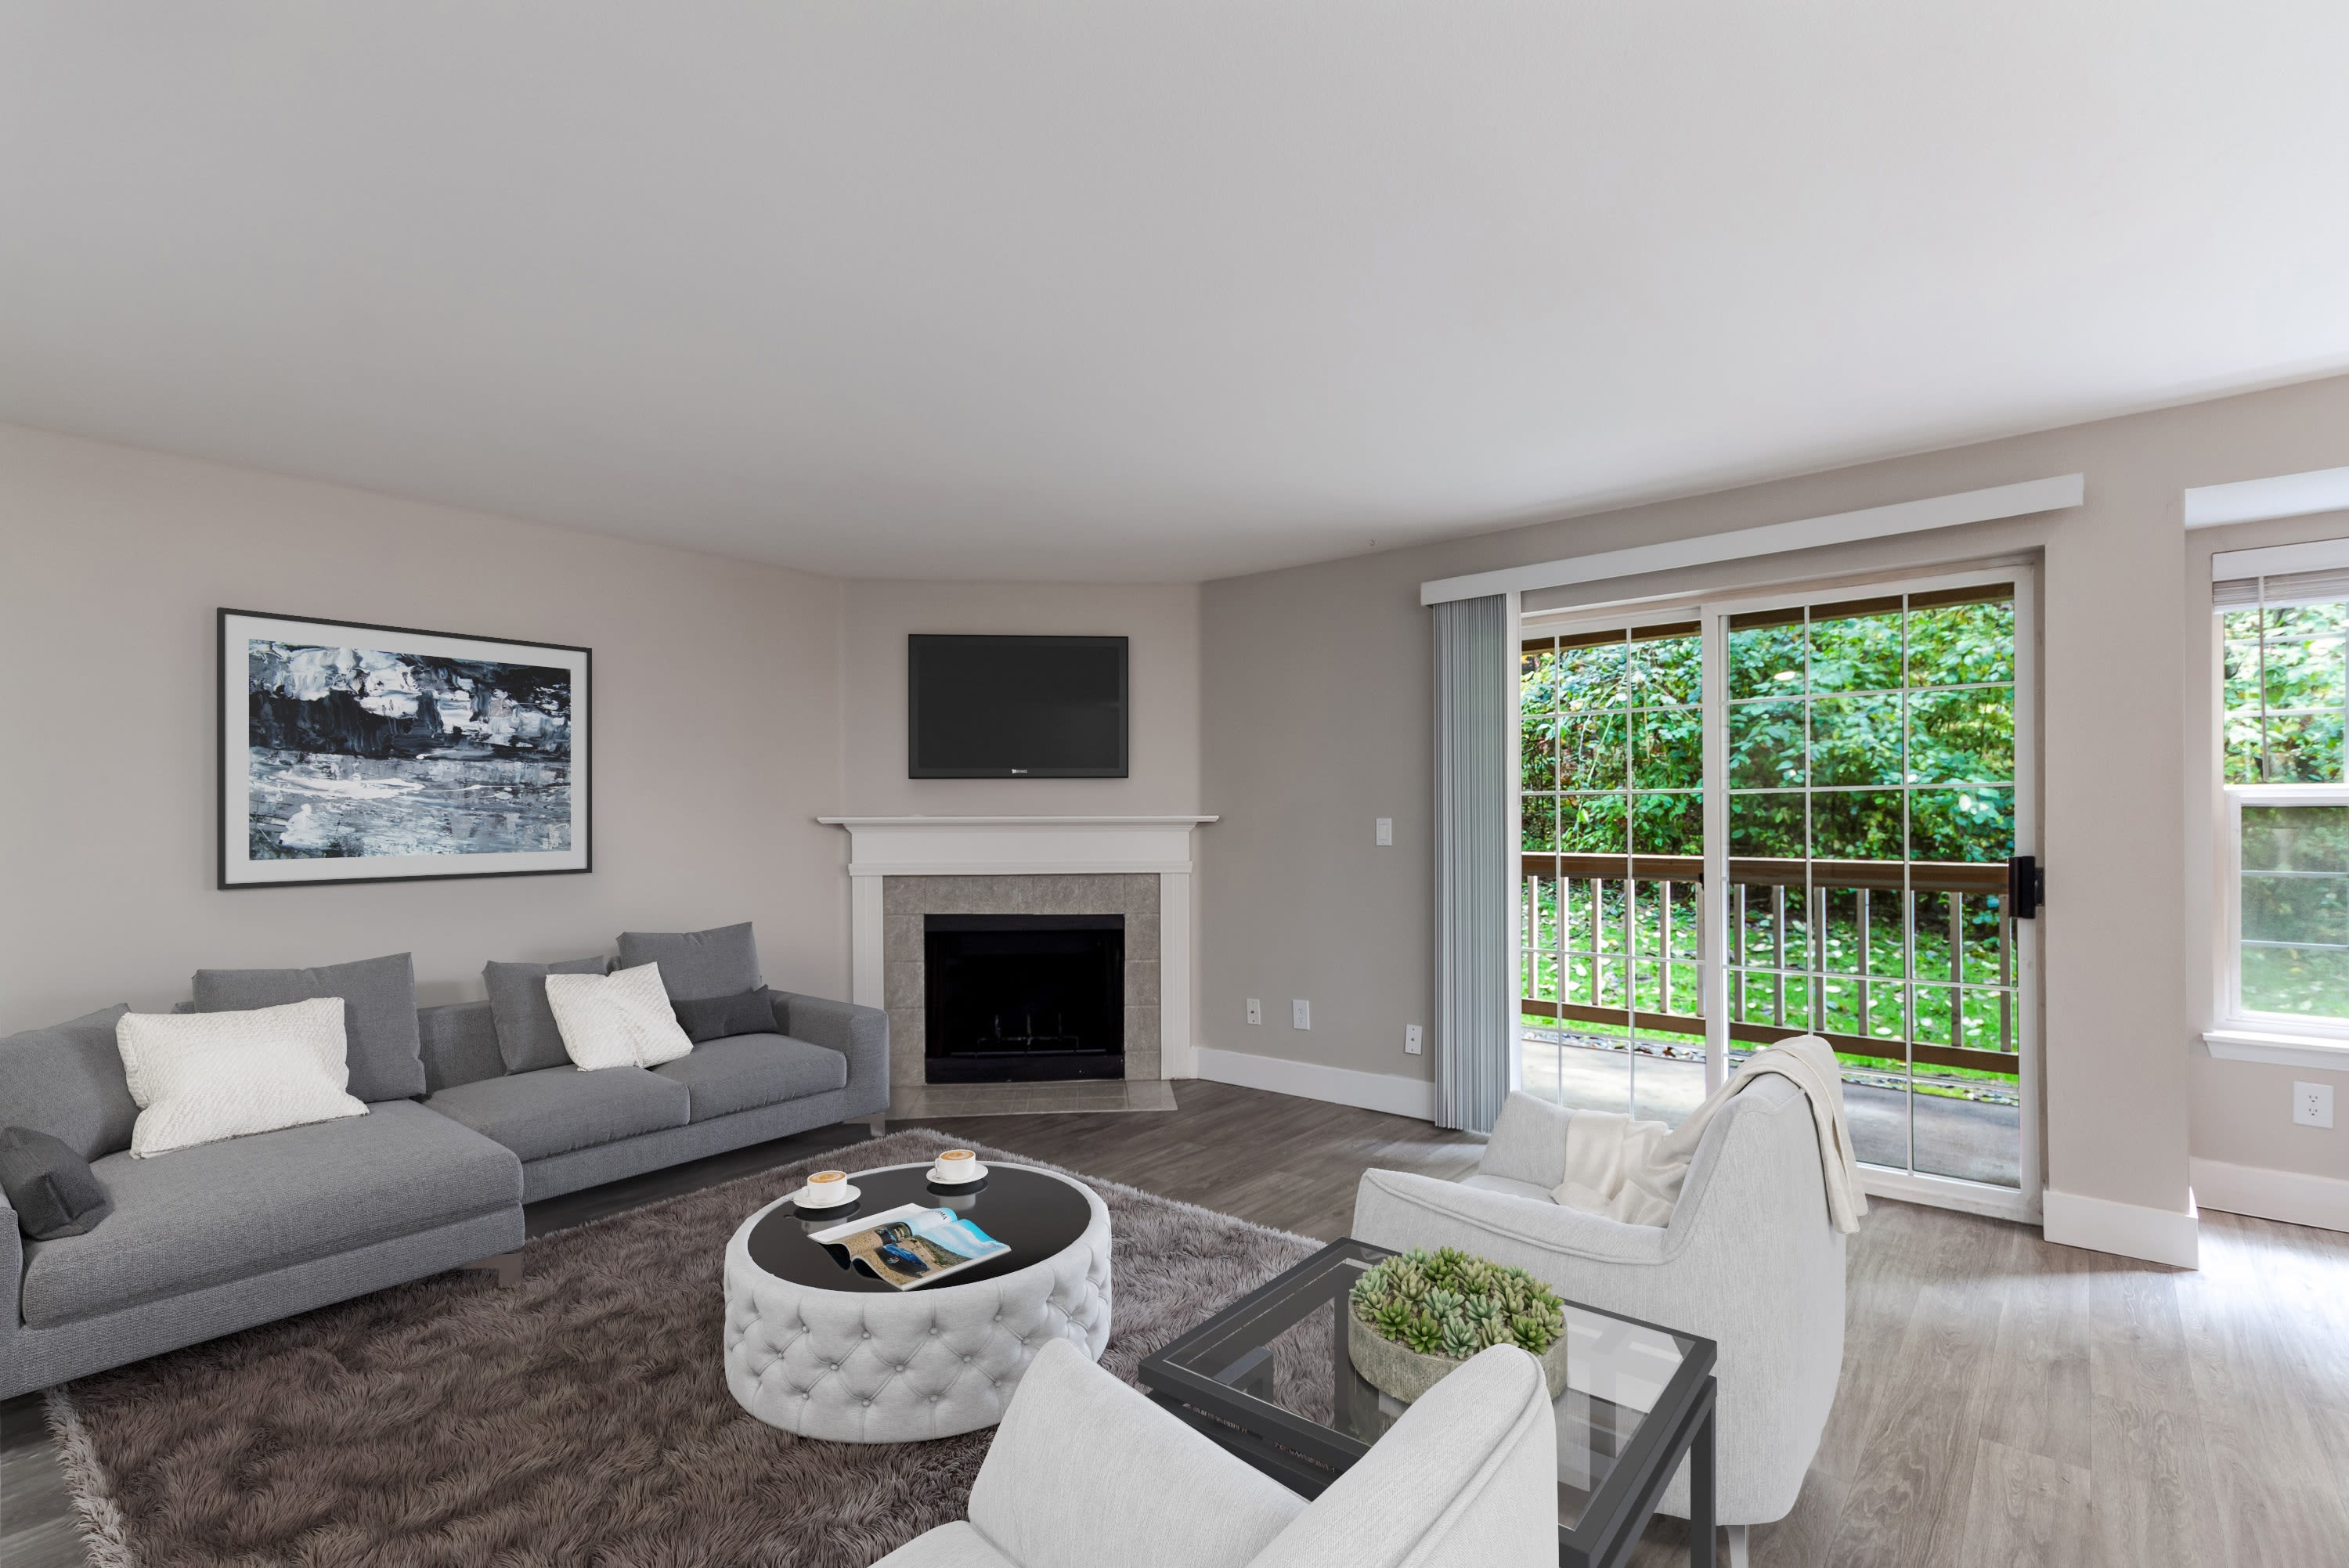 Fireplace and hardwood floors in model apartment home at Chandlers Bay